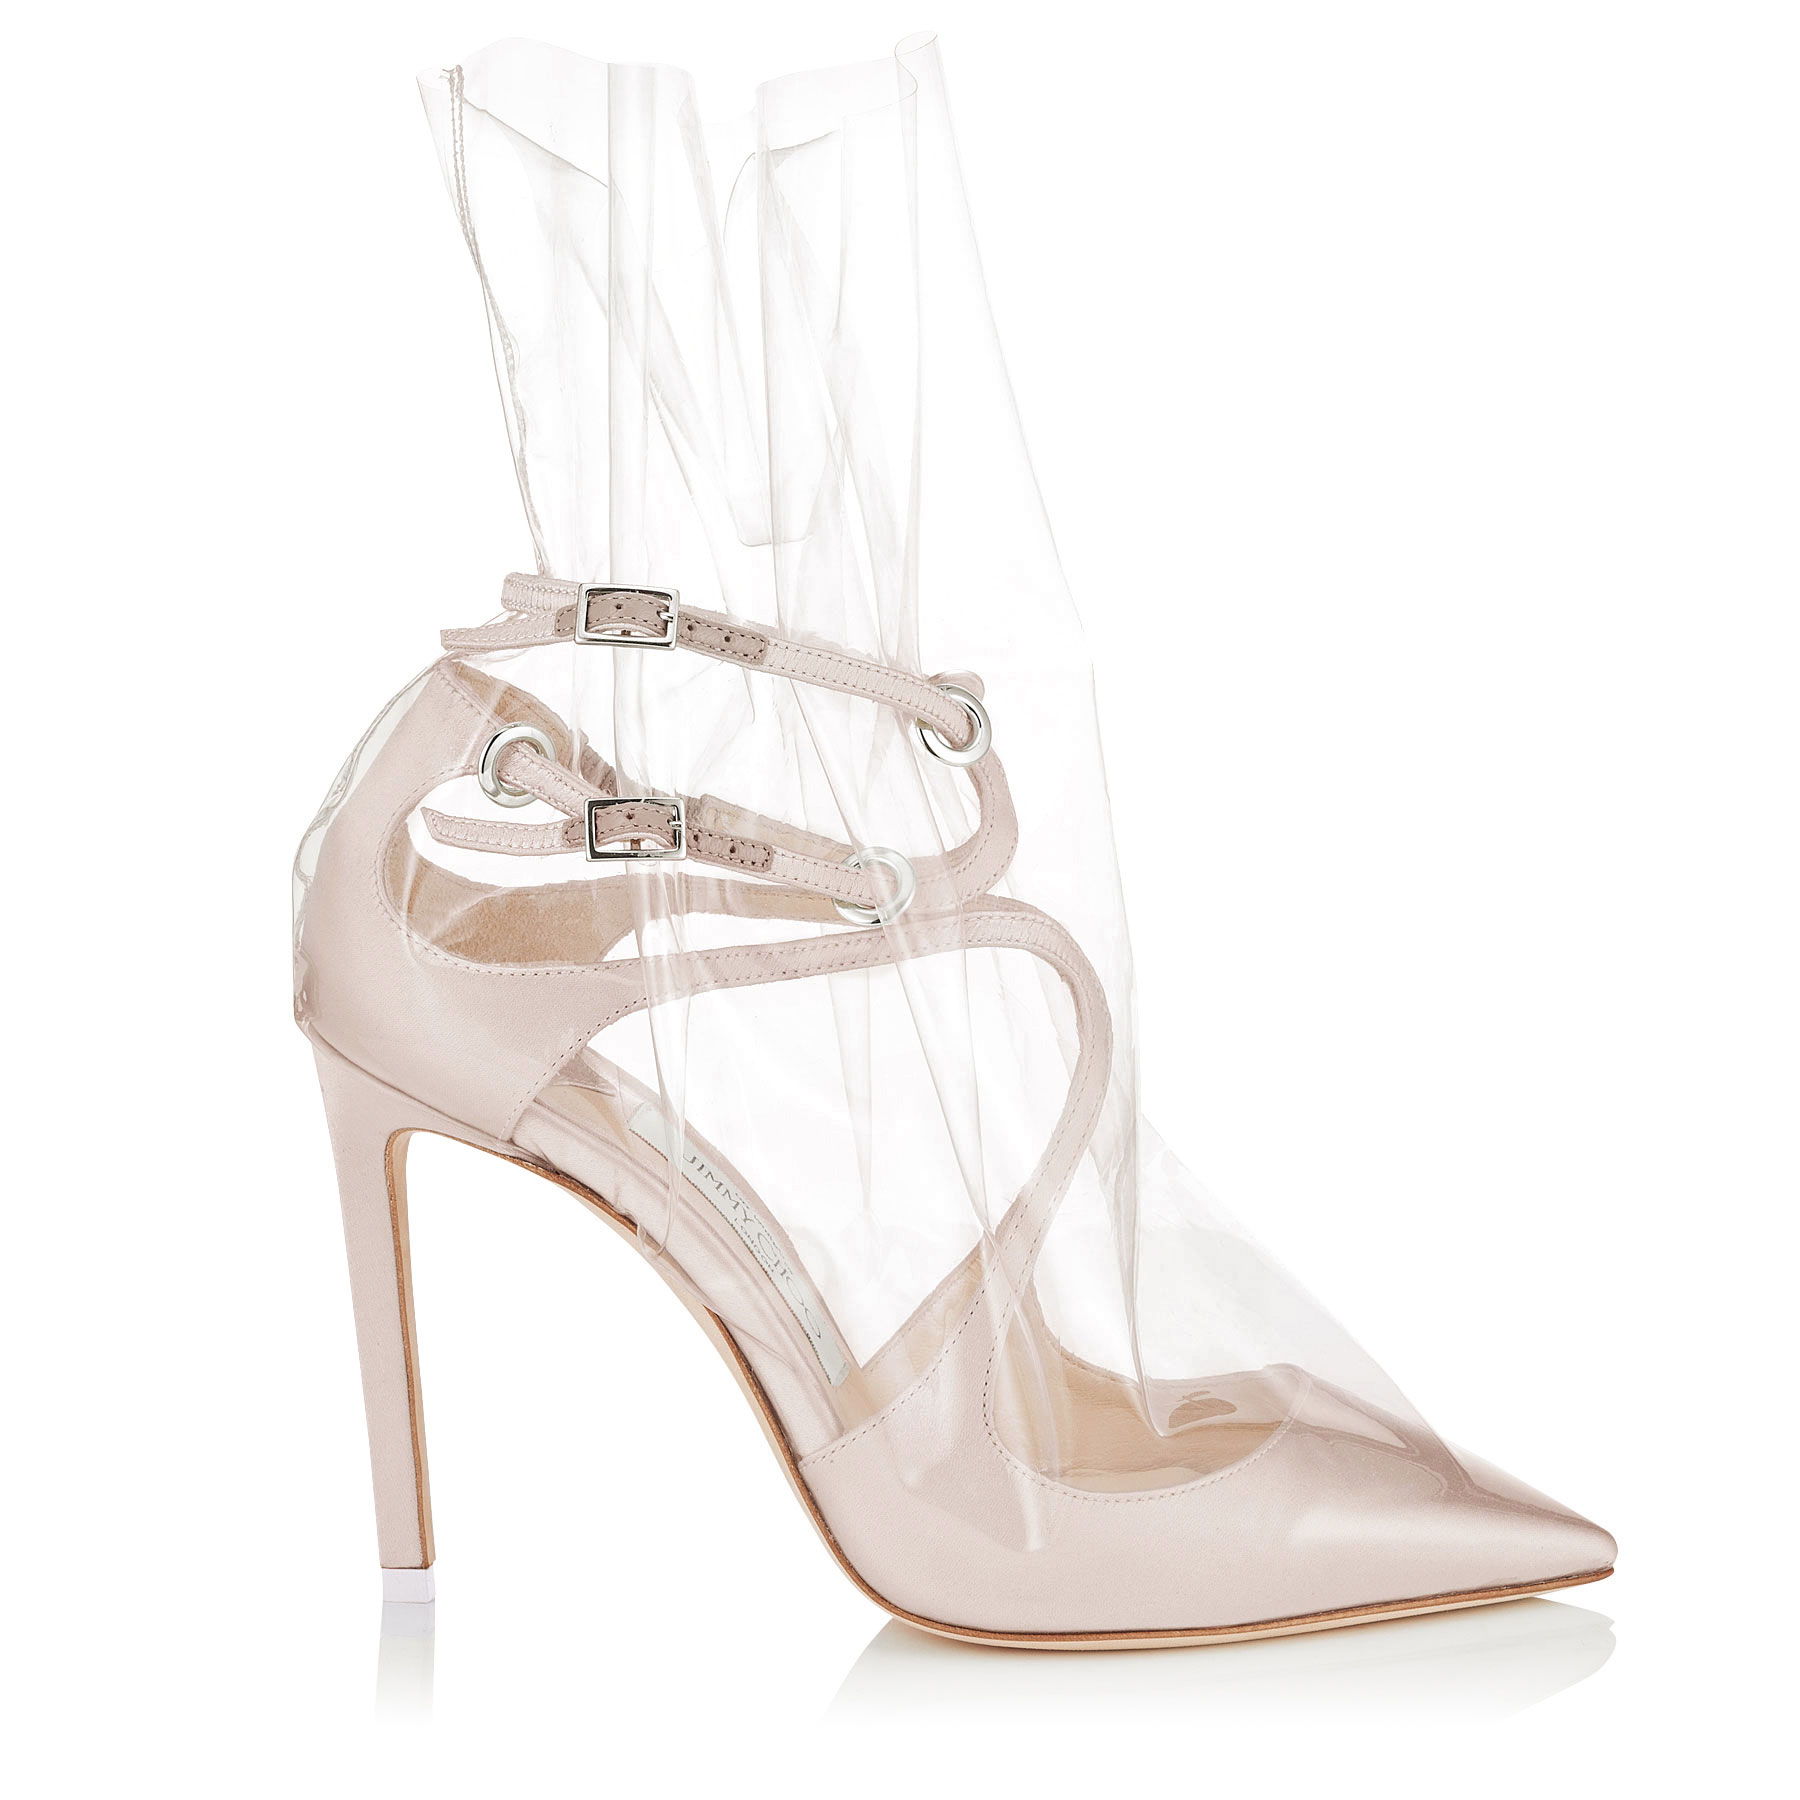 CLAIRE 100 White Satin Pointy Toe Pumps with Ruched TPU by Jimmy Choo